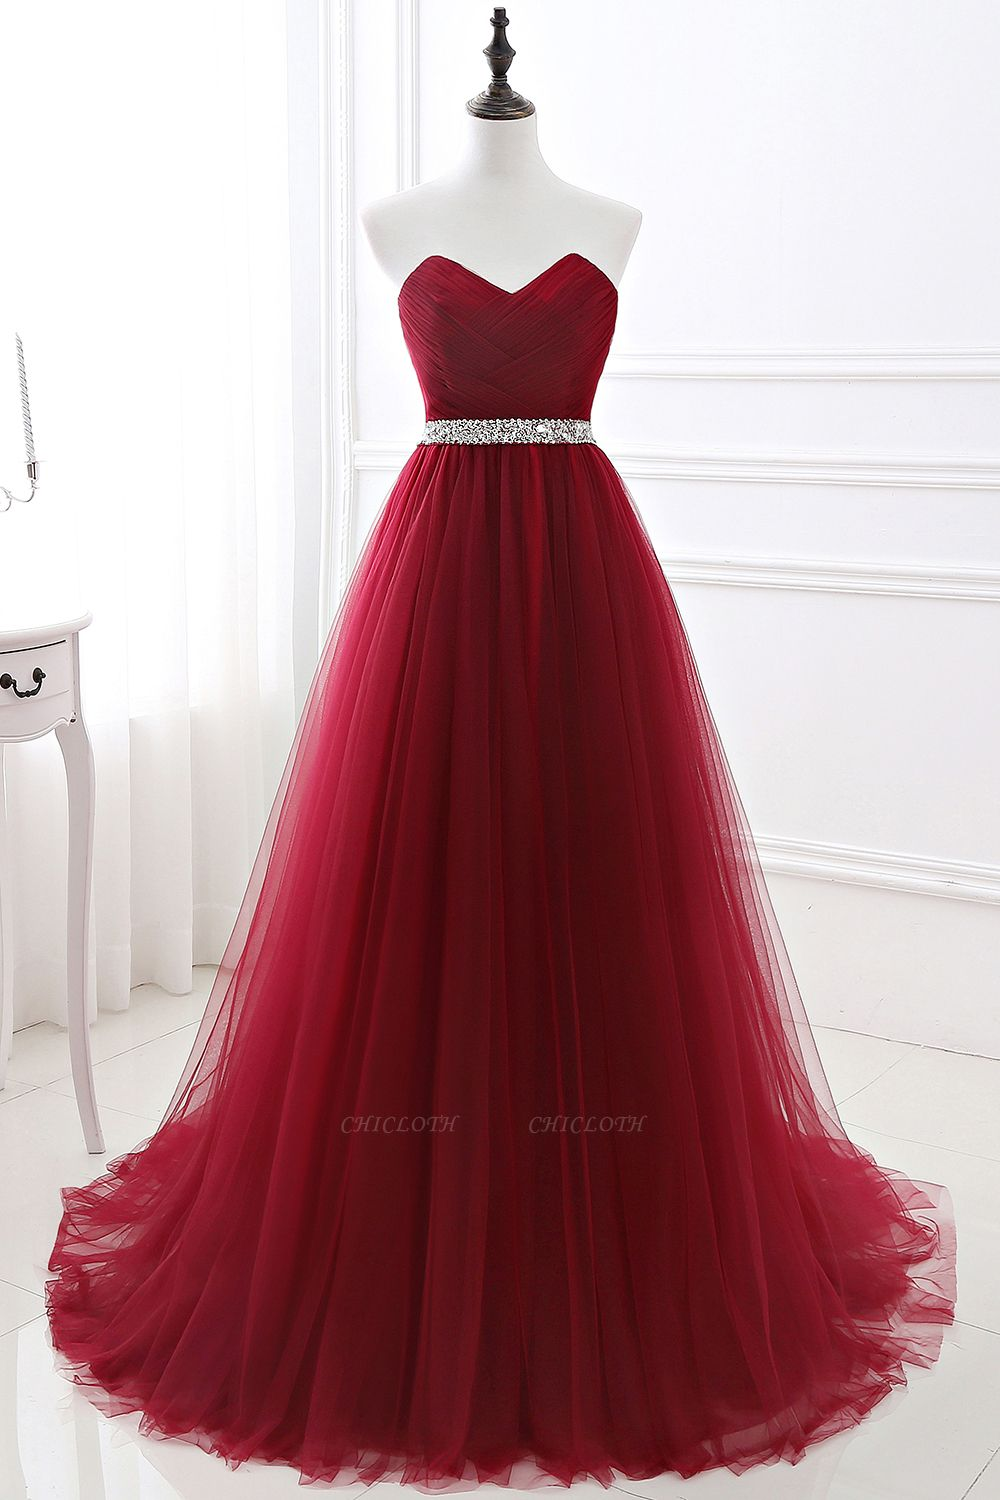 Women's Strapless Soft Tulle Dark Red Prom Dress